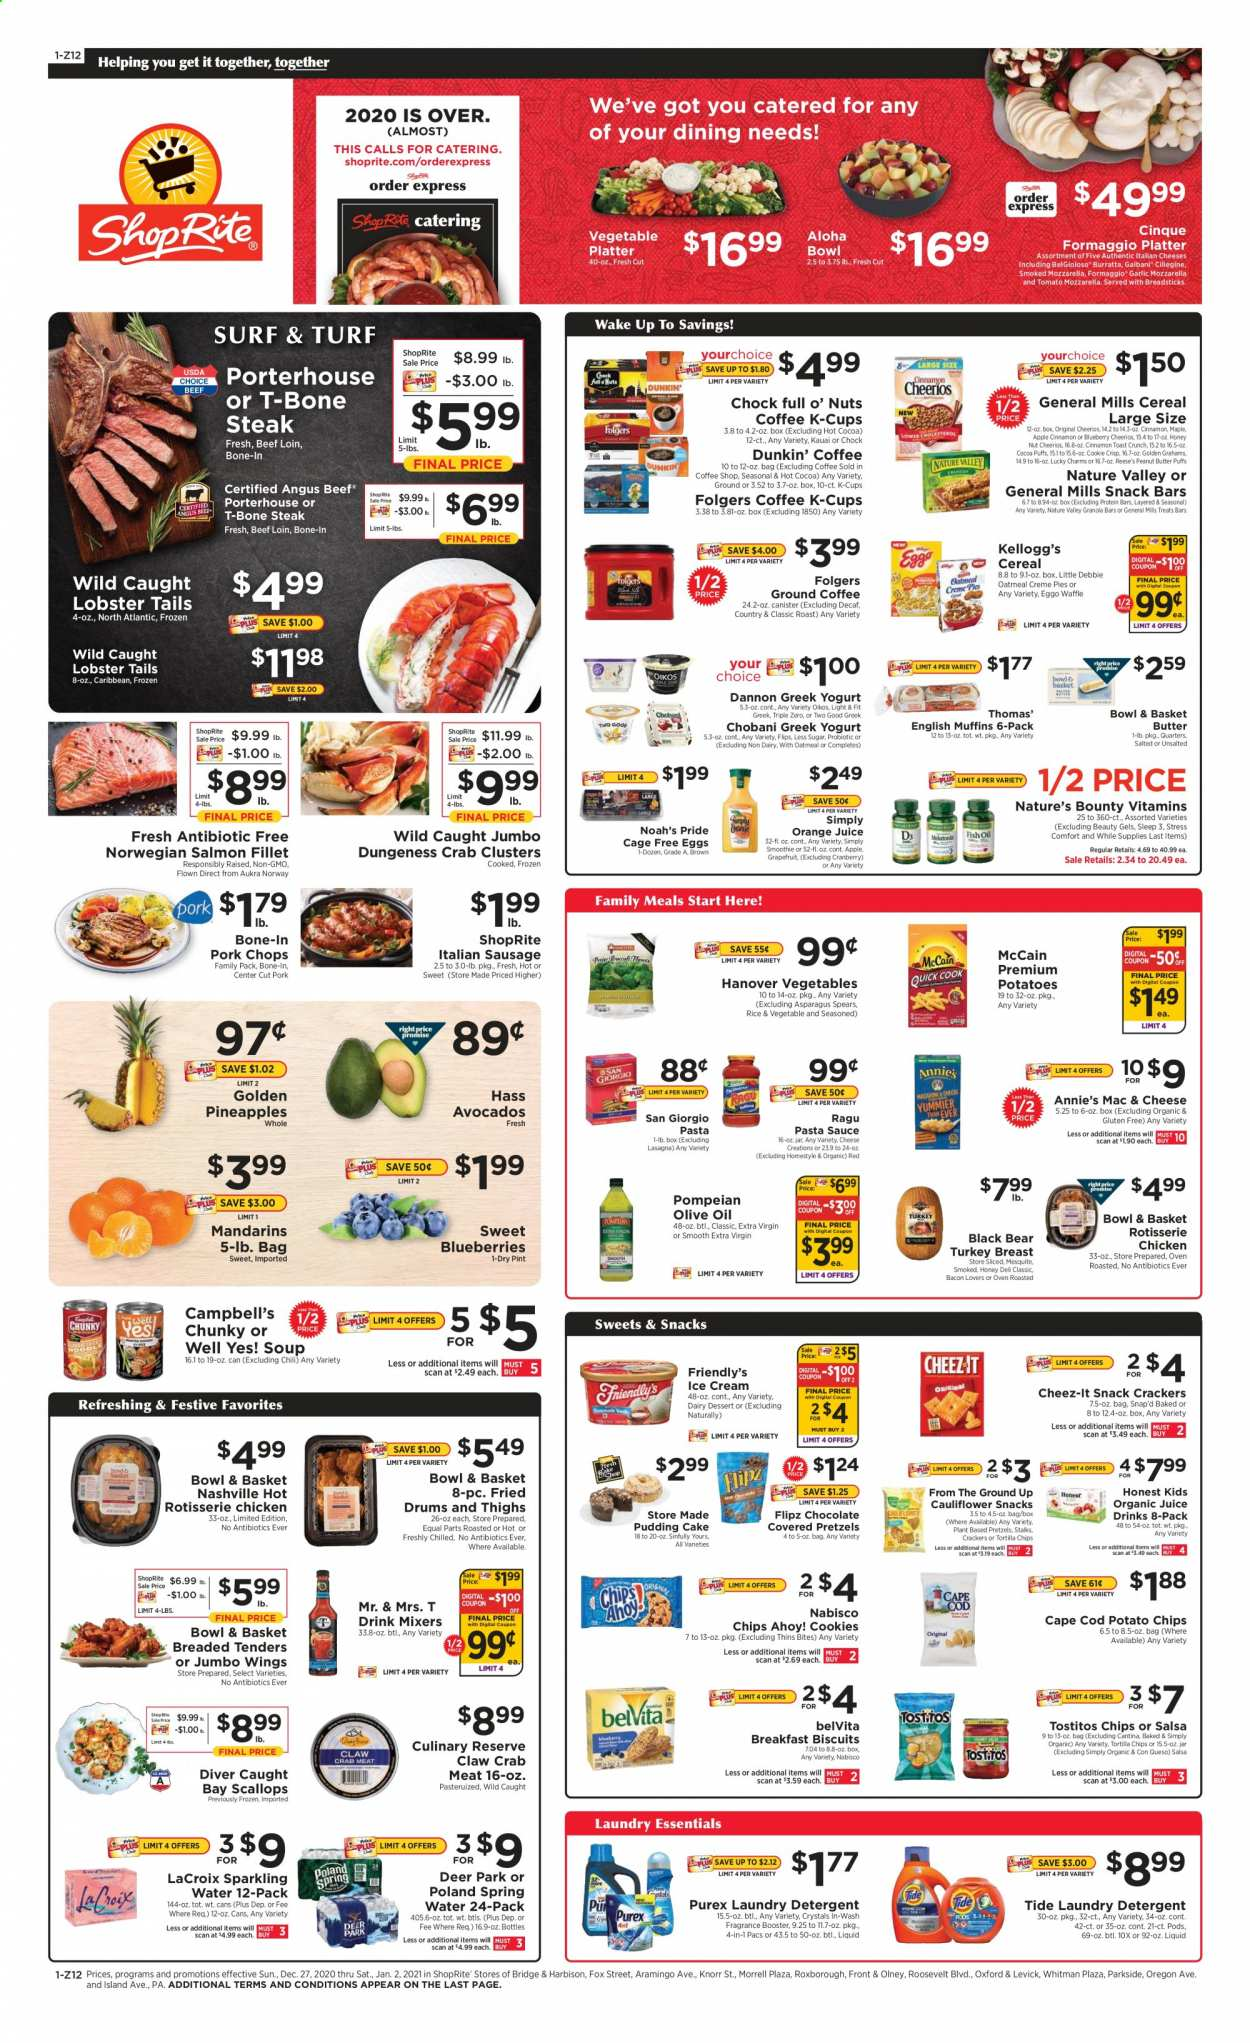 ShopRite Flyer - 12.27.2020 - 01.02.2021 - Sales products - apples, asparagus, avocado, bacon, basket, beef meat, biscuits, blueberries, box, breadsticks, Campbell's, cereals, cocoa, cod, cookies, crab meat, deer, detergent, eggs, extra virgin olive oil, fragrance, frozen, garlic, granola, granola bars, greek yogurt, lobster, macaroni & cheese, McCain, mozzarella, Nature's Bounty, rice, salmon, salmon fillet, sausage, scallops, spring water, t-bone steak, Tide, tortilla chips, turkey, turkey breast, honey, ice cream, jar, pineapple, pork chops, pork meat, potato chips, potatoes, pretzels, protein, pudding, cheerios, chicken, pasta sauce, peanut butter, oatmeal, olive oil, oven, orange juice, orange, chips, chocolate, steak, cheese, juice, cake, soup, snack, sparkling water, salsa, pasta, reese, Knorr, canister, sauce, nuts, Bounty, smoothie, platter, crab, laundry detergent, Folgers, Apple, vegetable, essentials, pineapples, spring. Page 1.